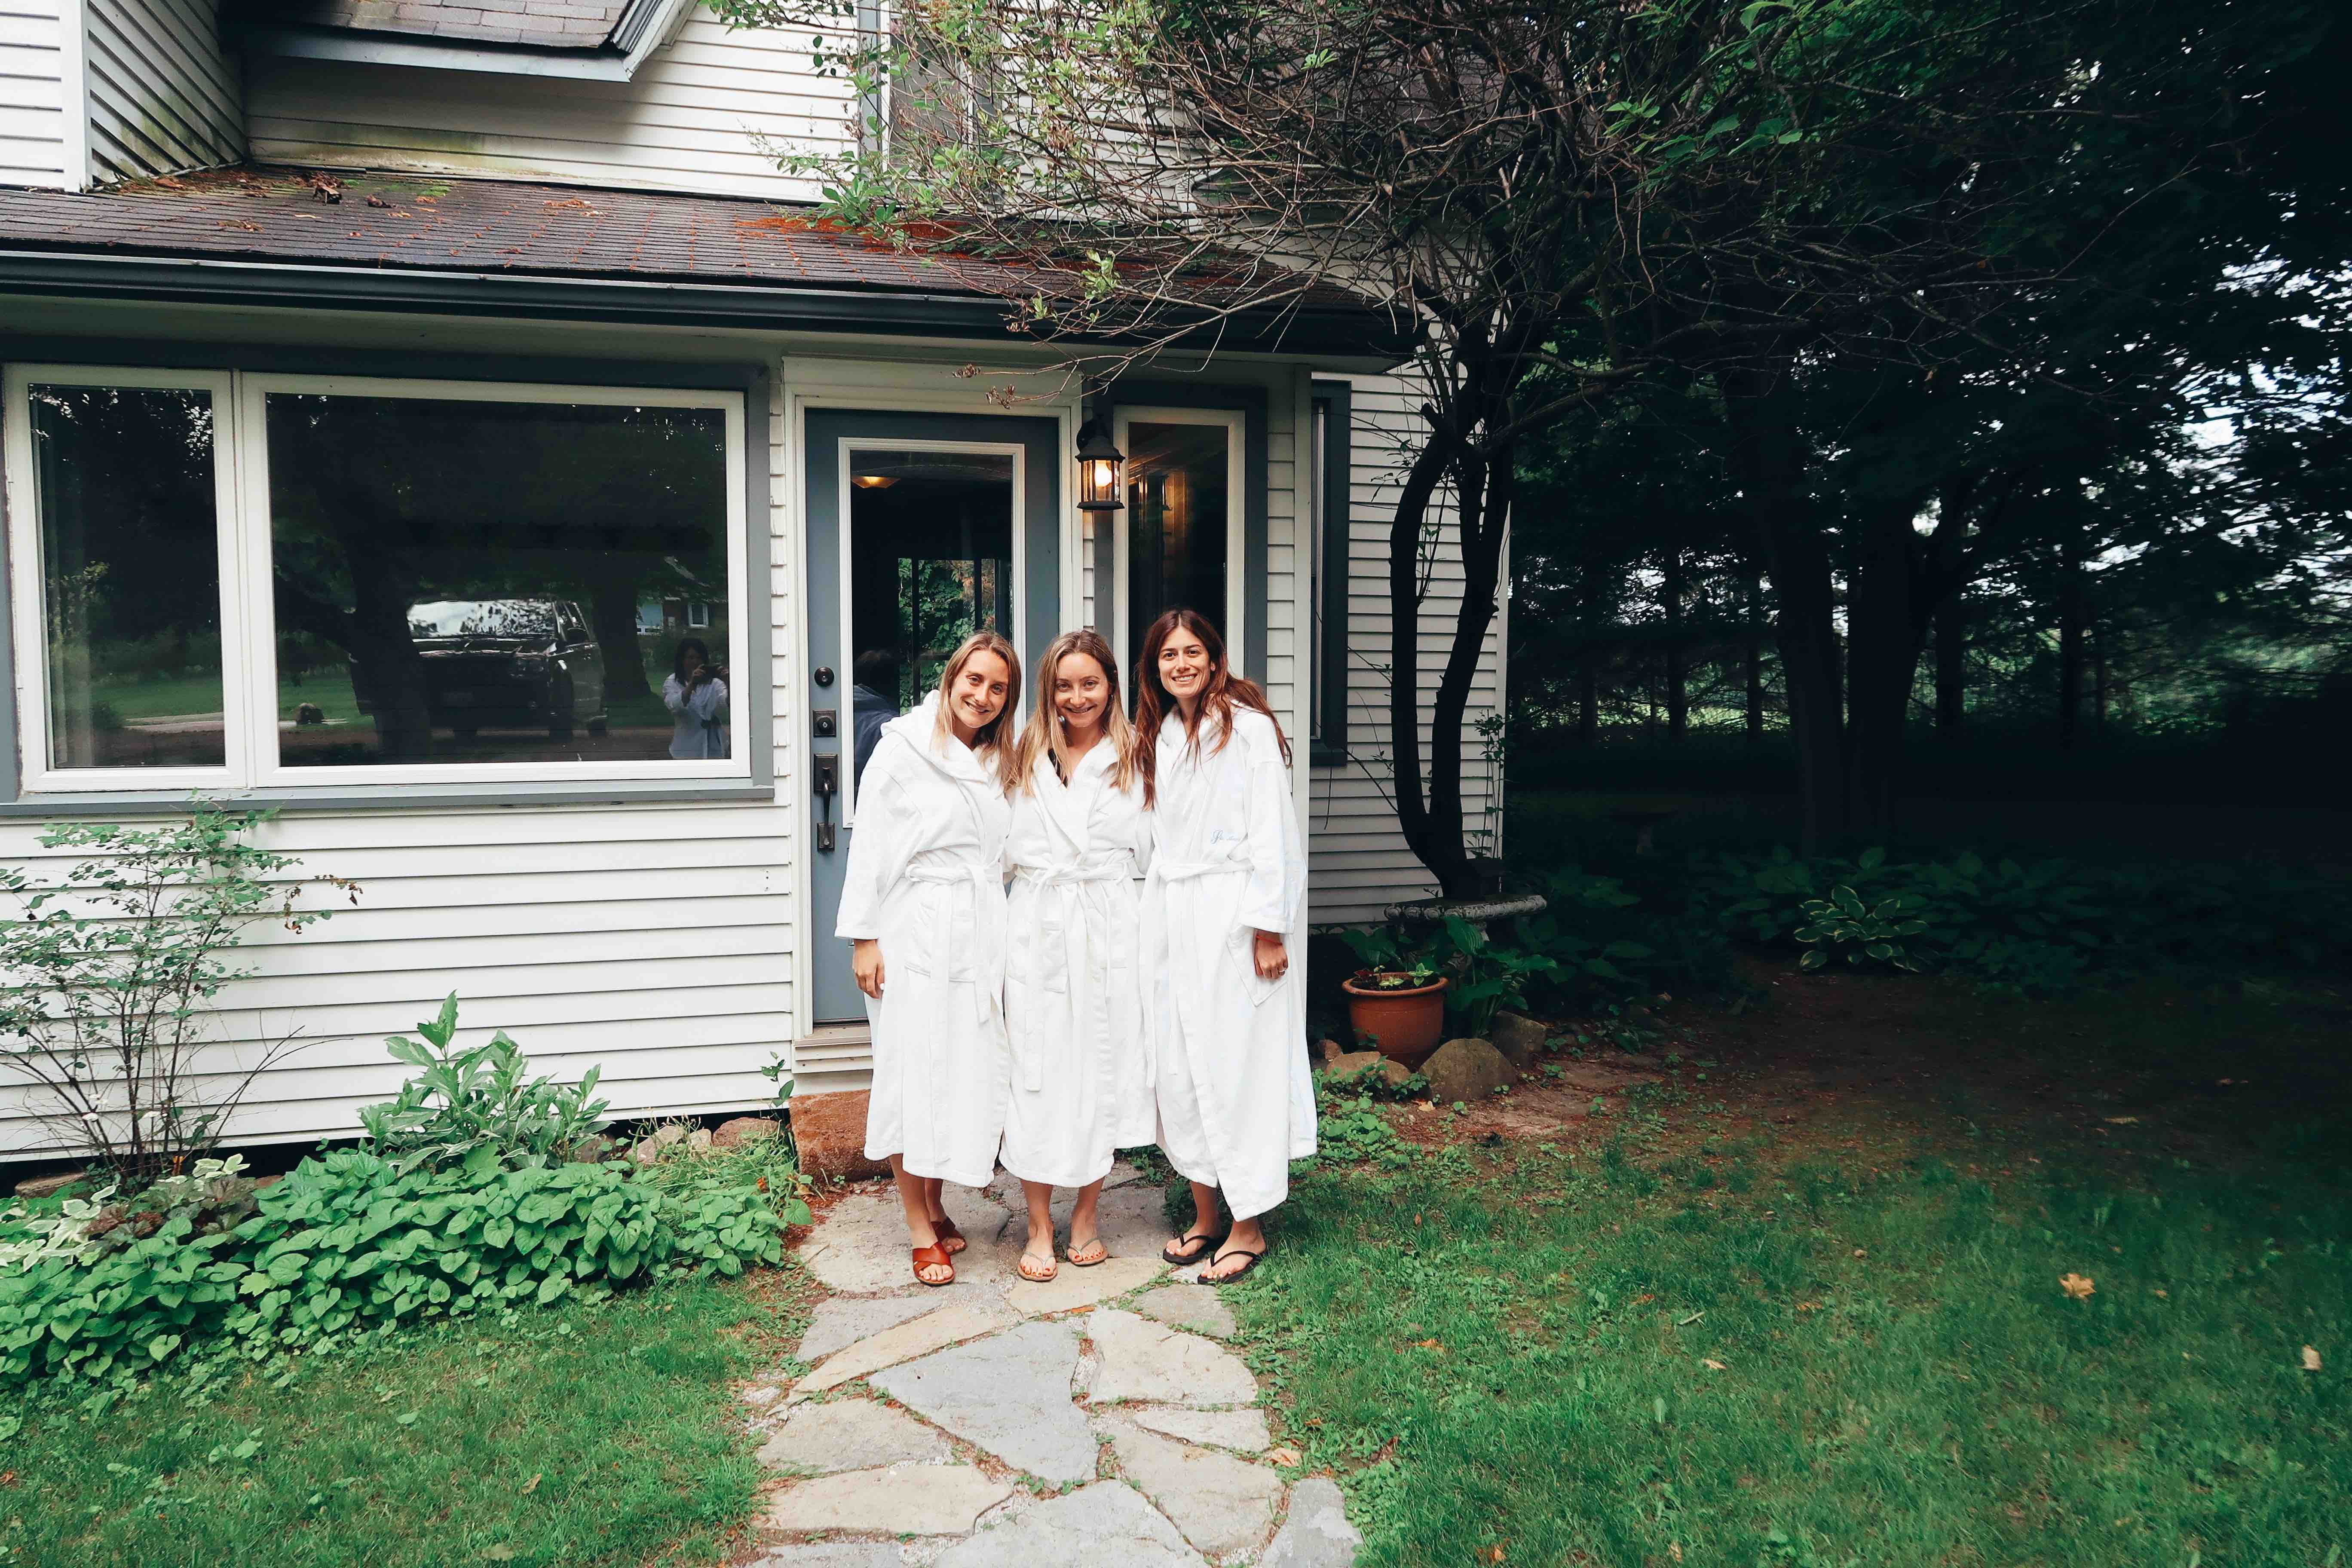 jordana hart toronto nutritionist and blogger and two friends at ste annes spa smiling in white robes